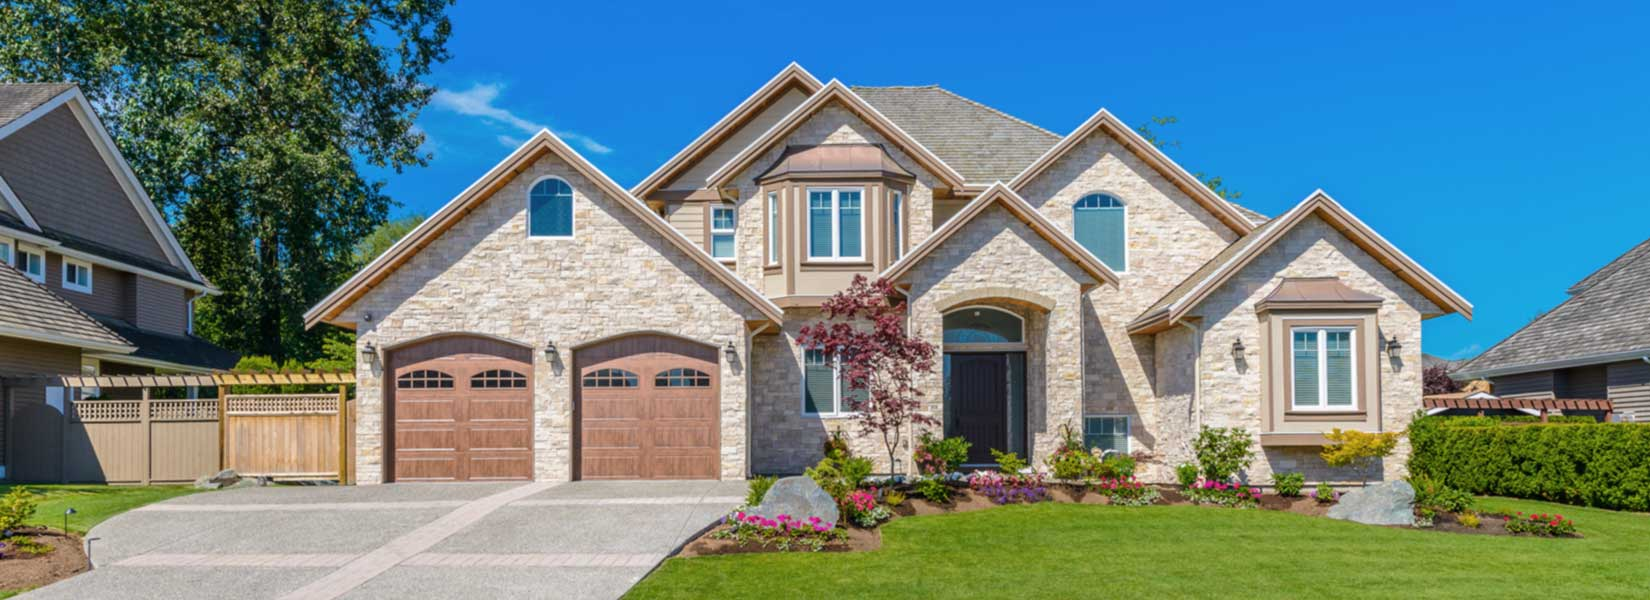 Some Facts You Might Not Have Known About Roofing